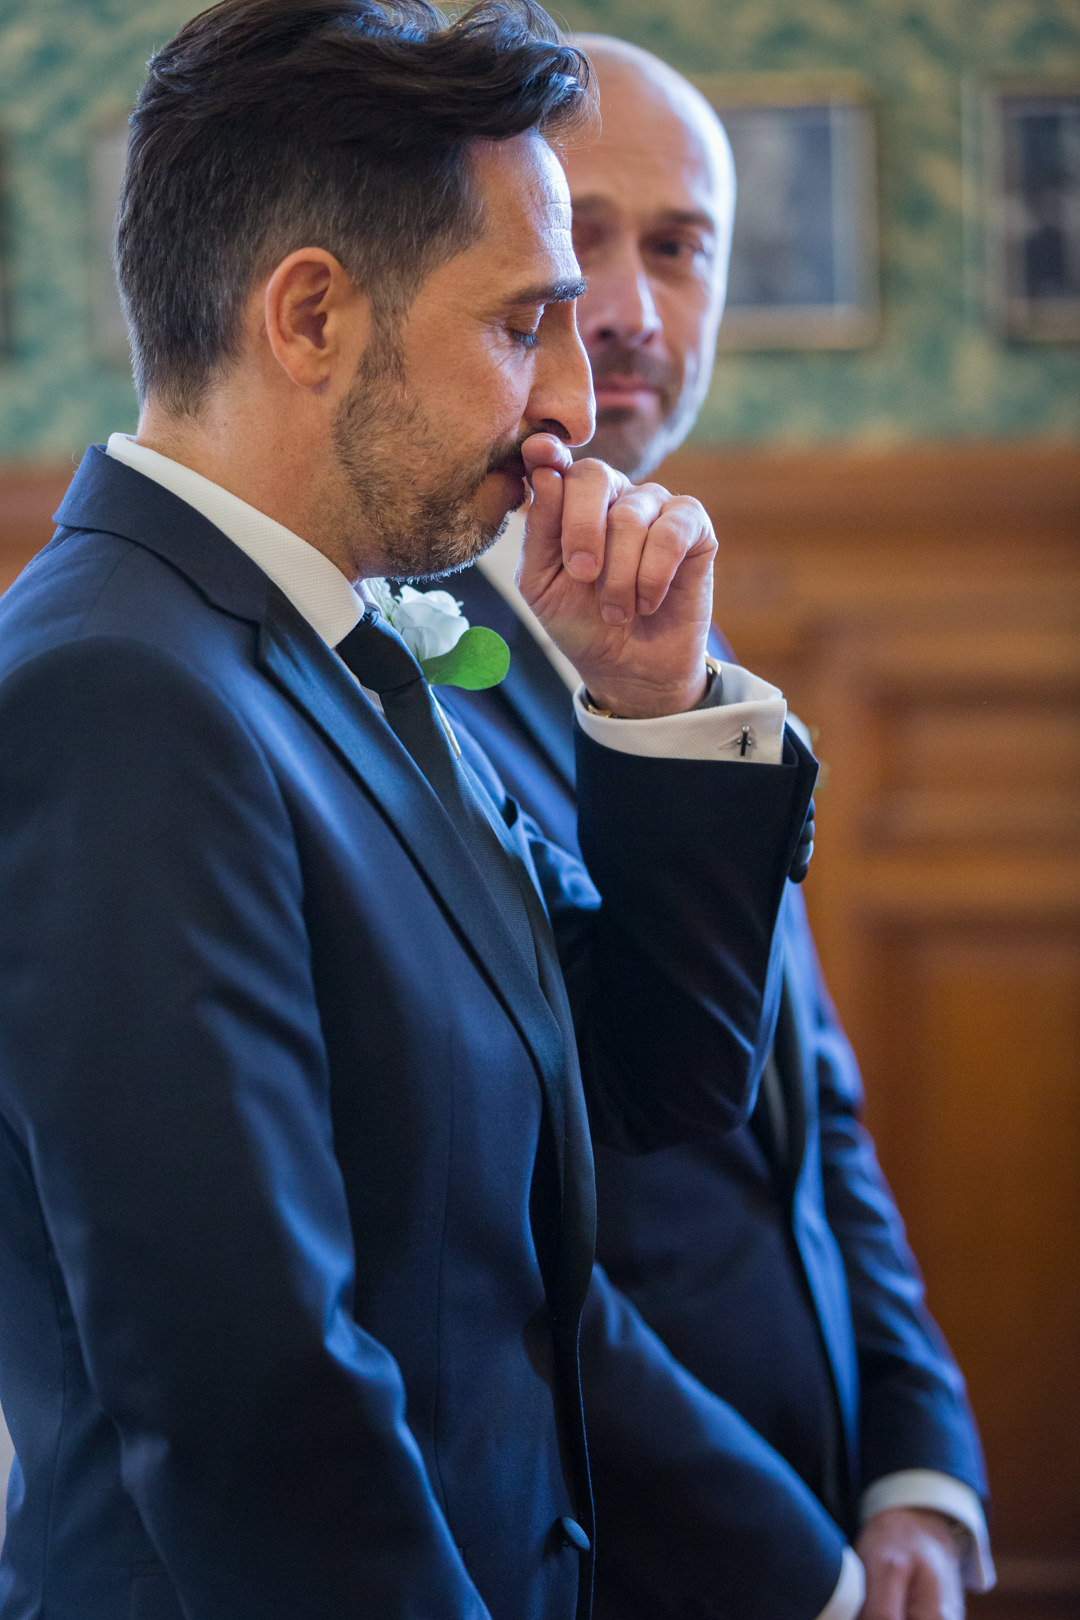 photographe-mariage-gay-paris